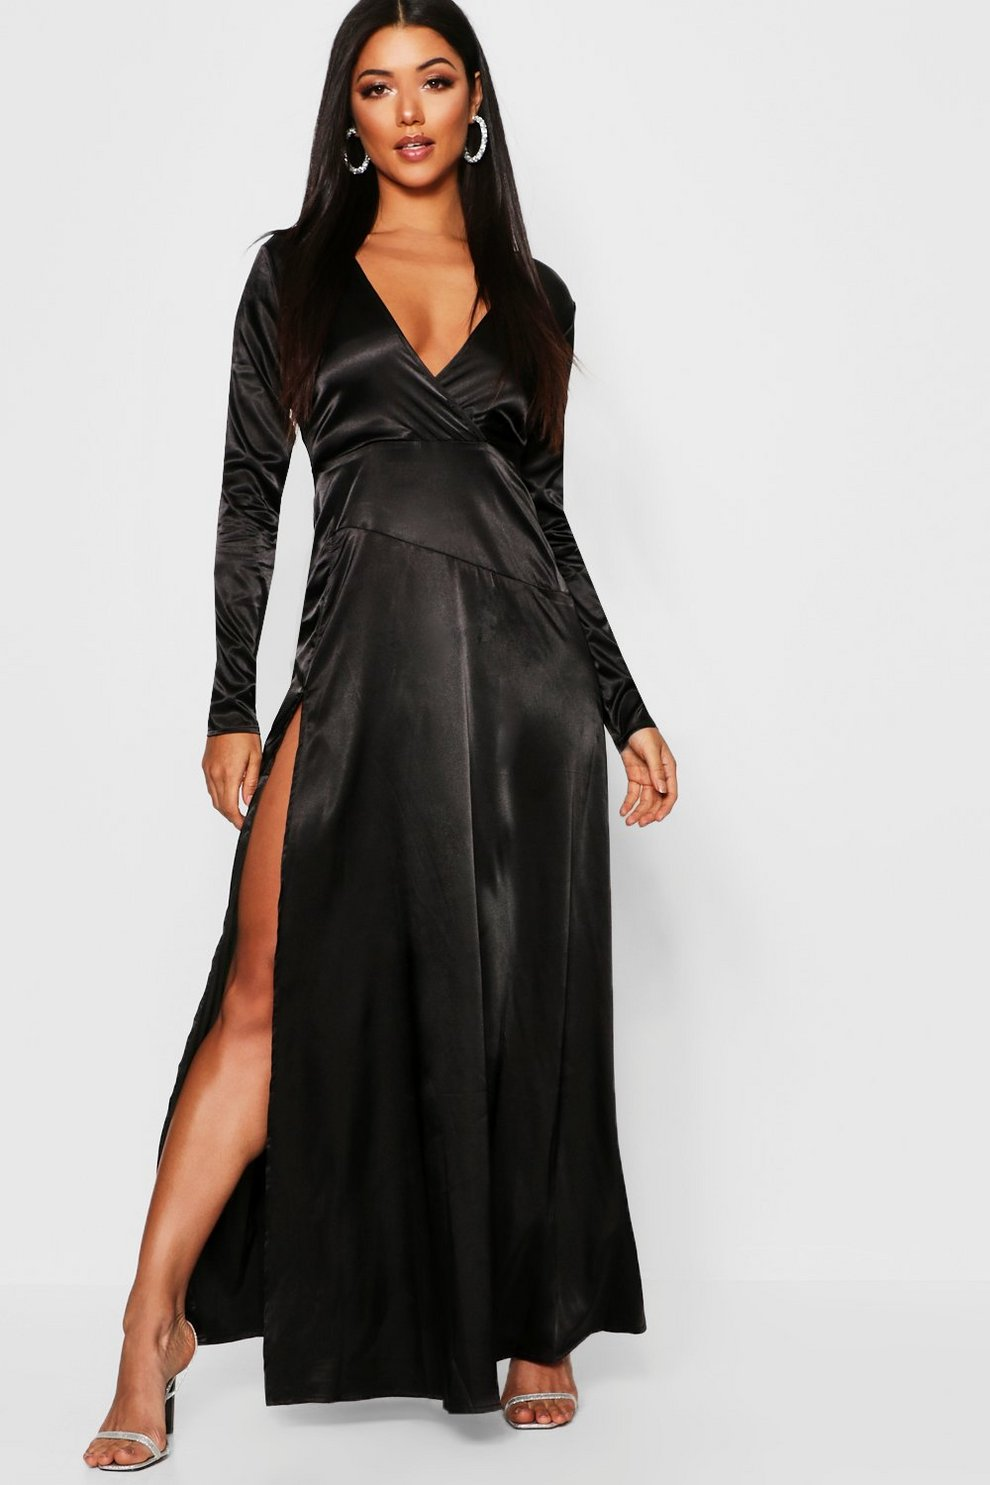 be367875fa8 Womens Black Satin Wrap Detail Long Sleeve Maxi Dress. Hover to zoom